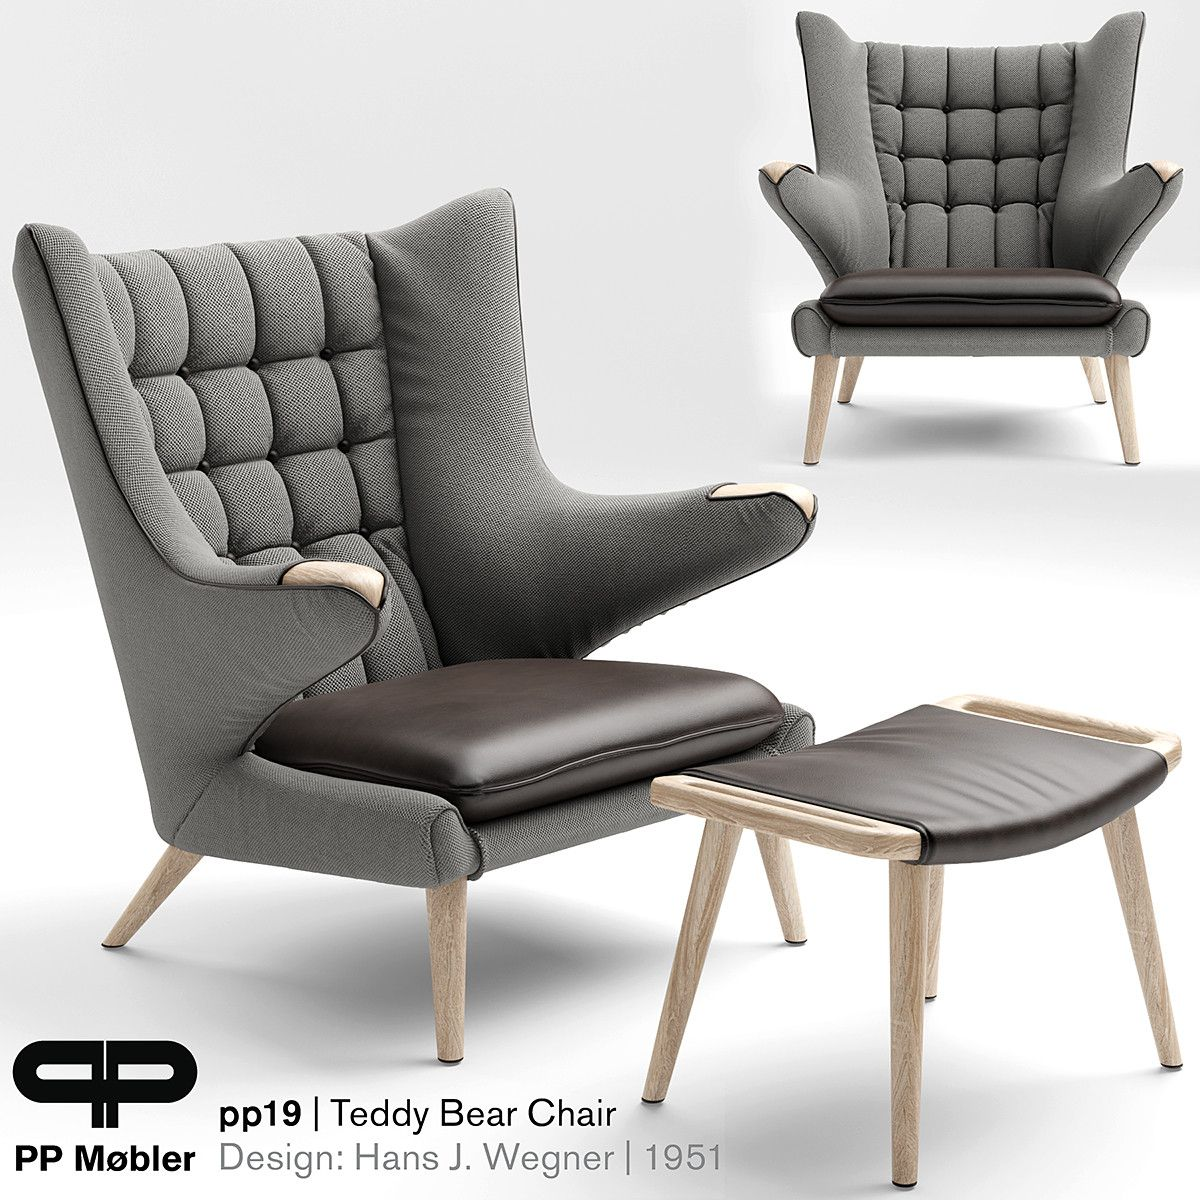 Great Armchair THE TEDDY BEAR CHAIR Model Available On Turbo Squid, The Worldu0027s  Leading Provider Of Digital Models For Visualization, Films, Television, ...